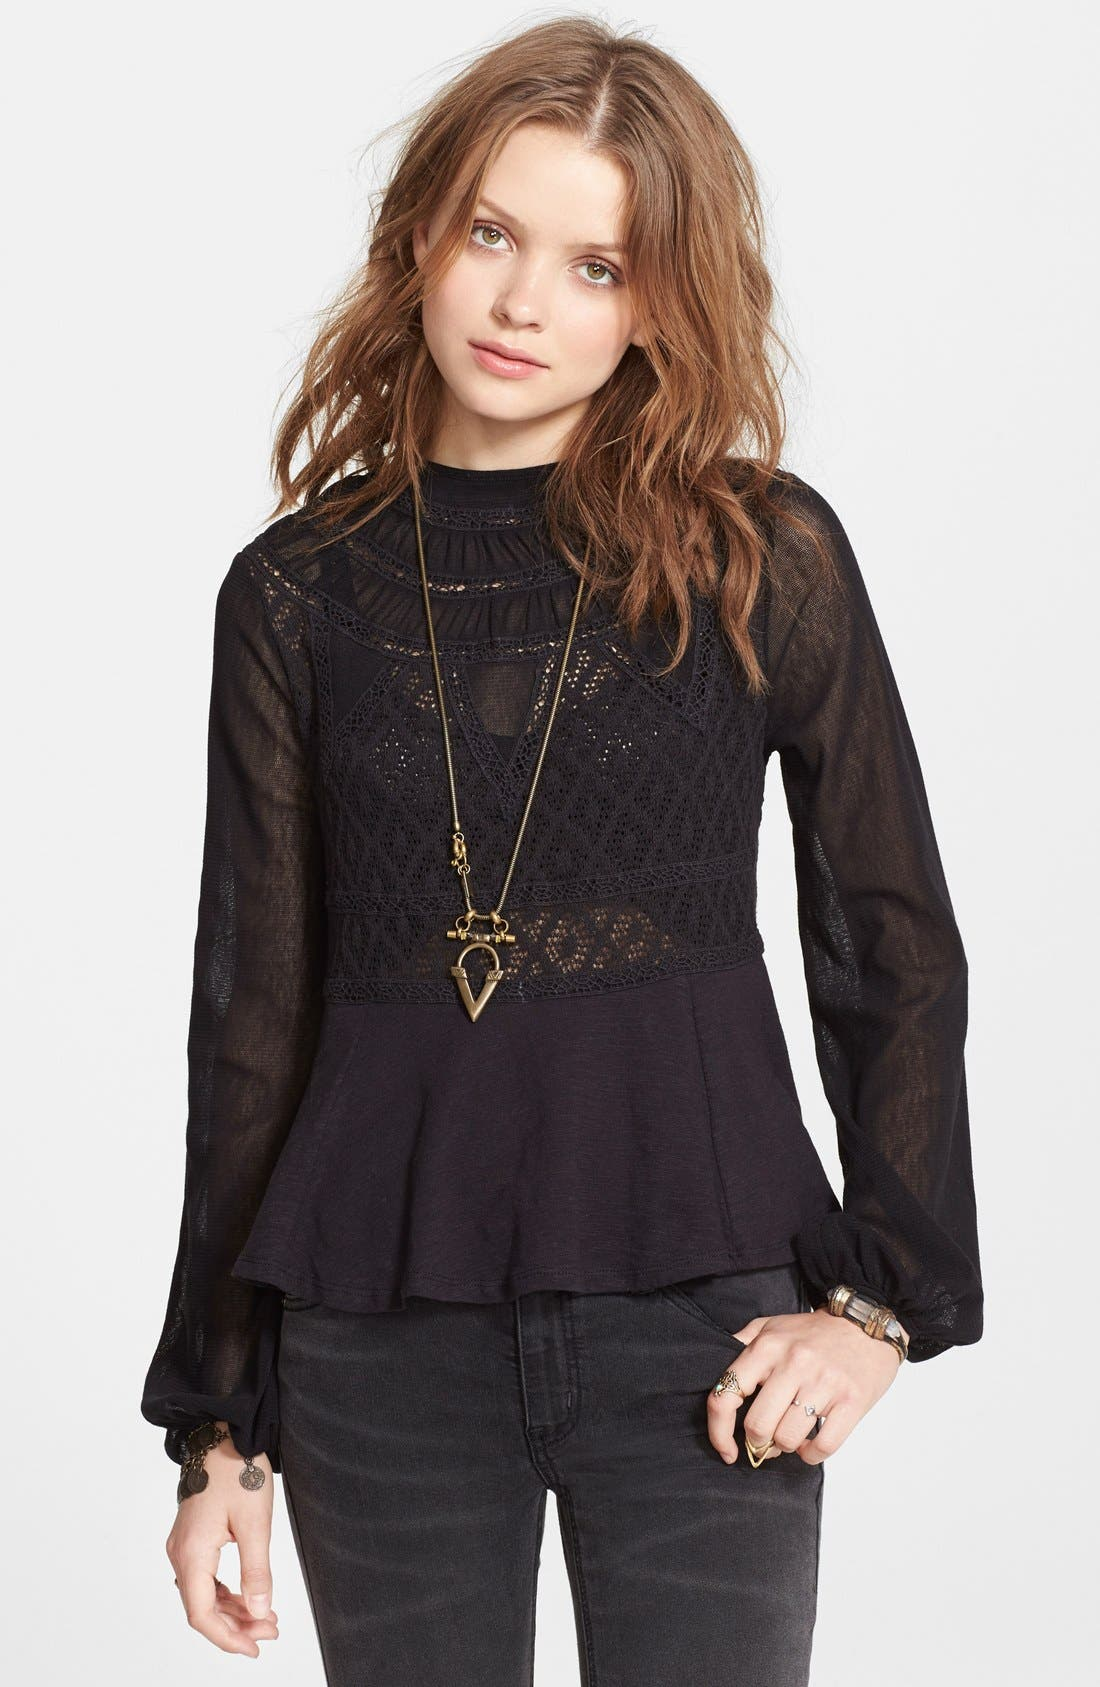 Alternate Image 1 Selected - Free People 'English Rose' Embroidered Lace Top